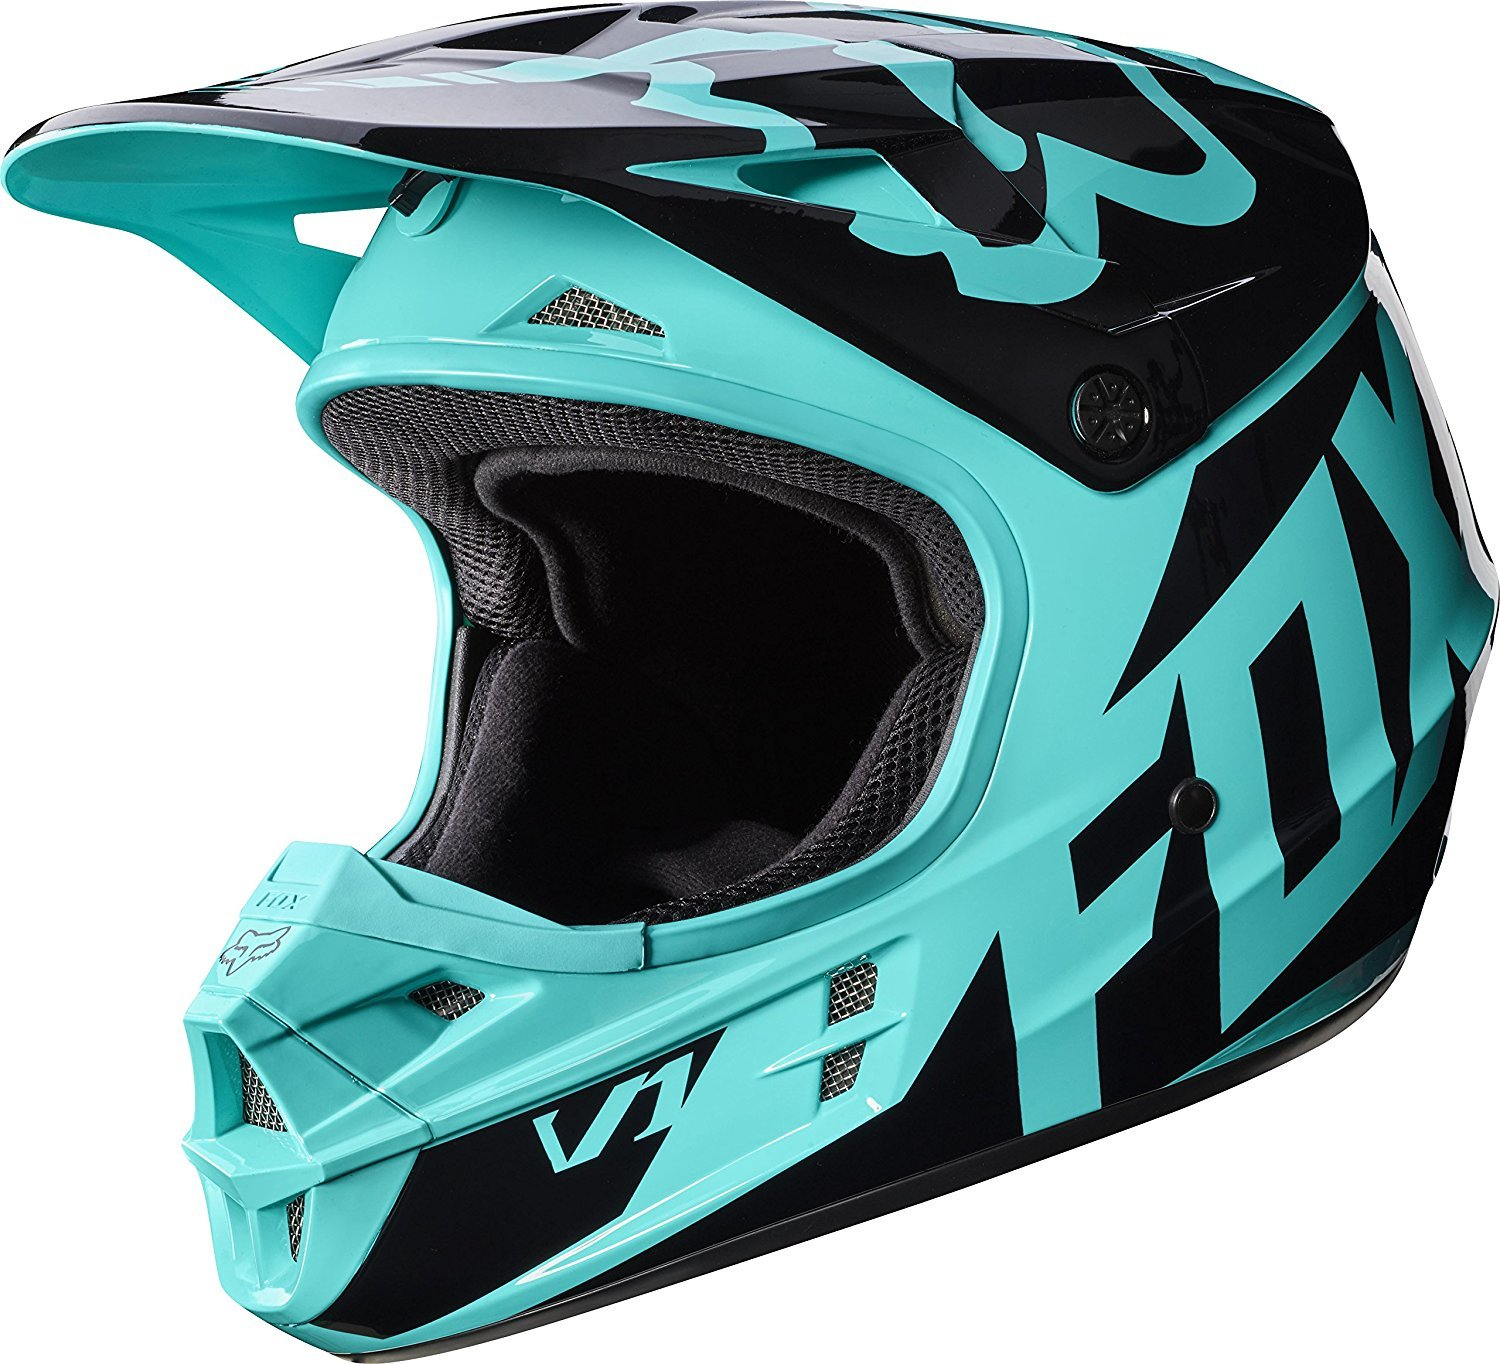 What S The Best Dirt Bike Helmet You Can Get The Elite Product